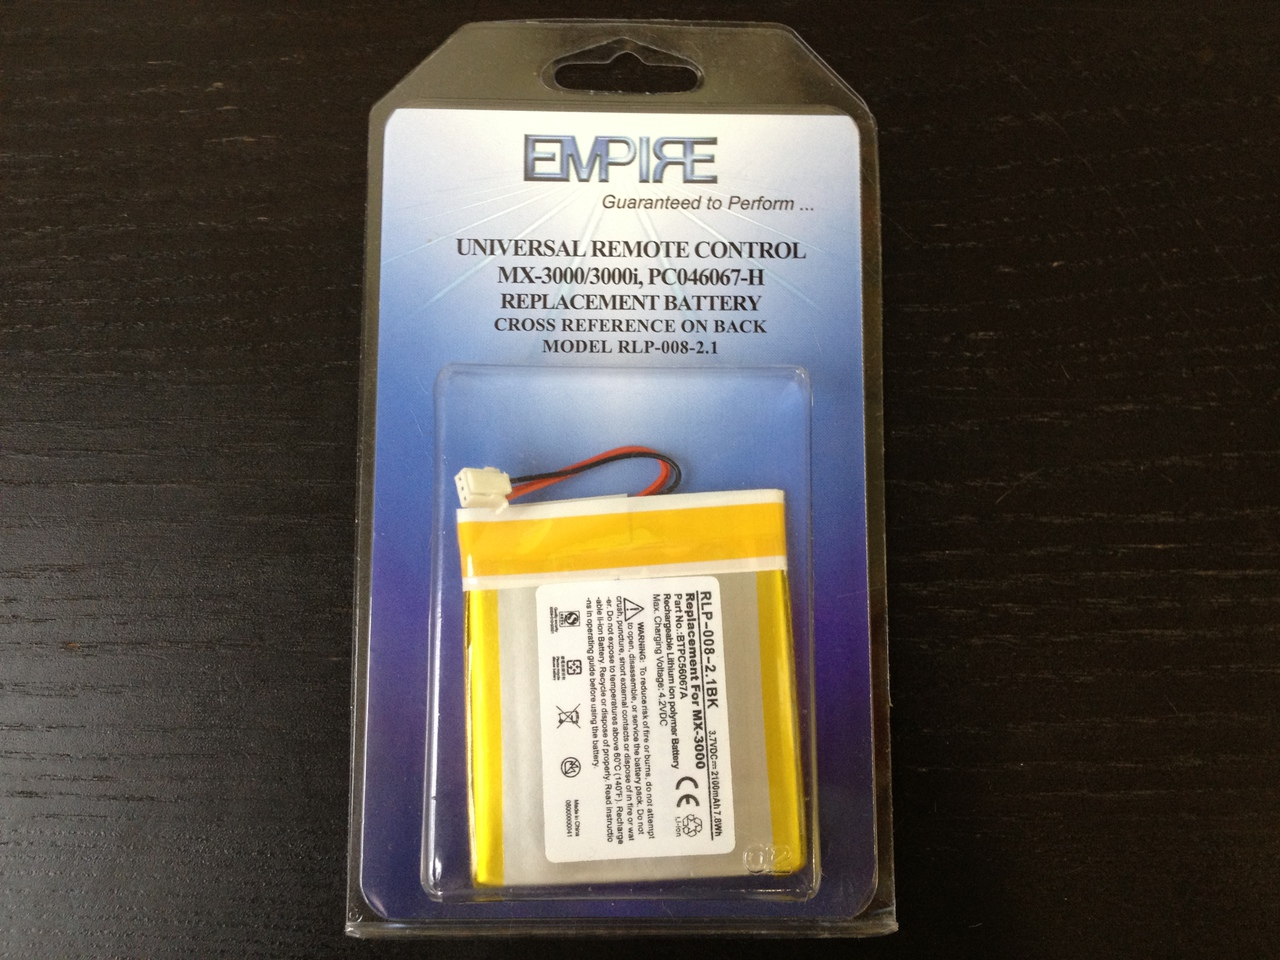 UNIV. REMOTE MX3000 LI-POL 2100mAh Remote Control Battery